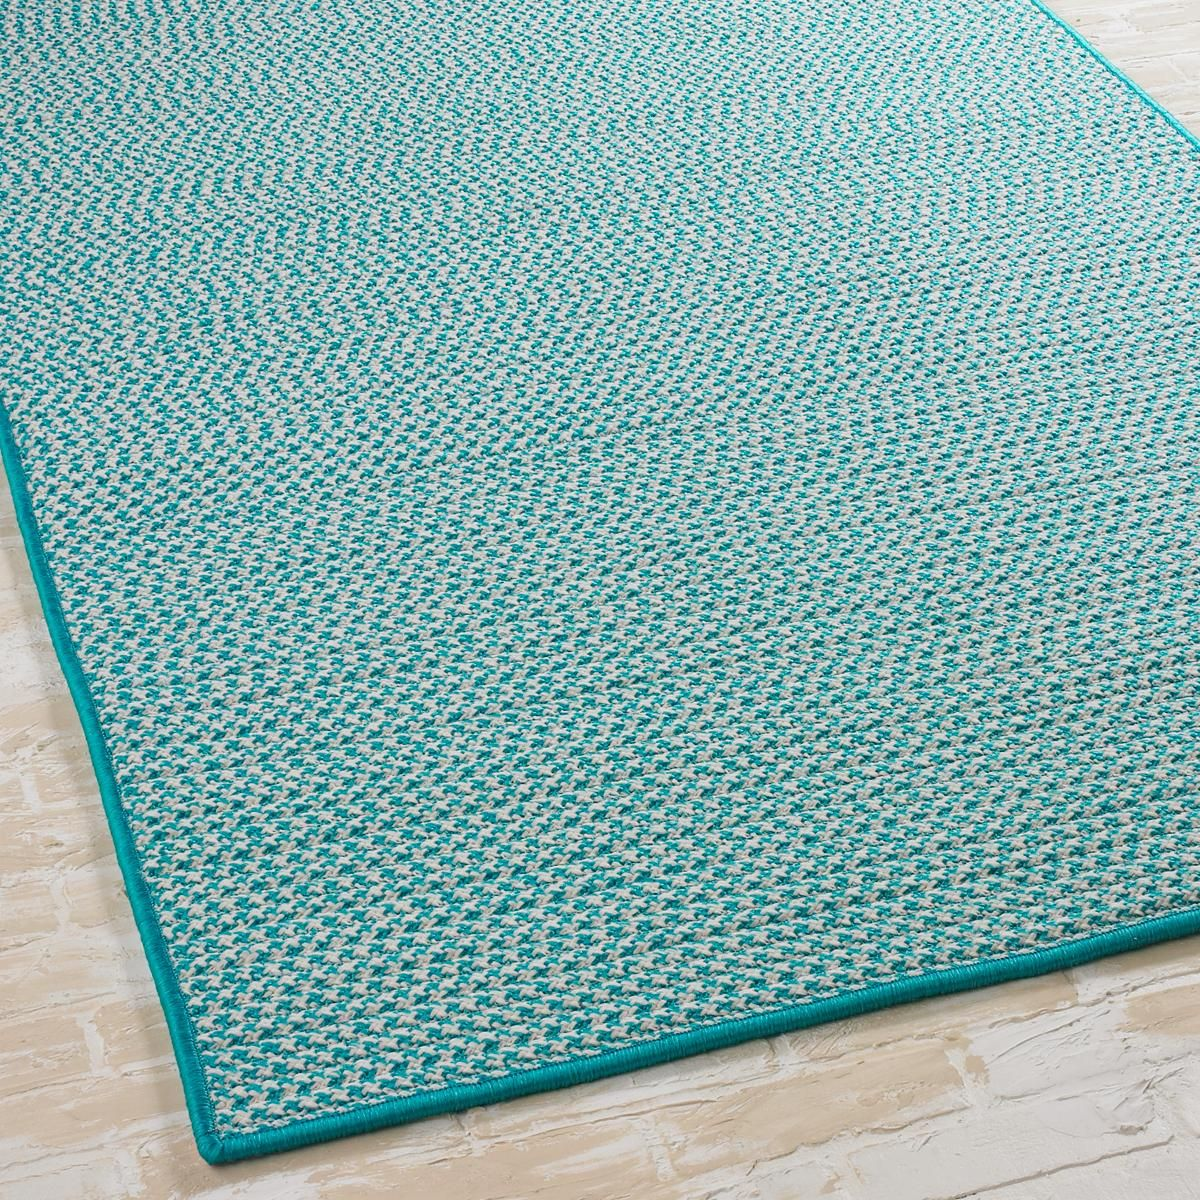 """2'5""""x11' Turquoise Houndstooth Tweed Indoor-Outdoor for stair carpet?"""